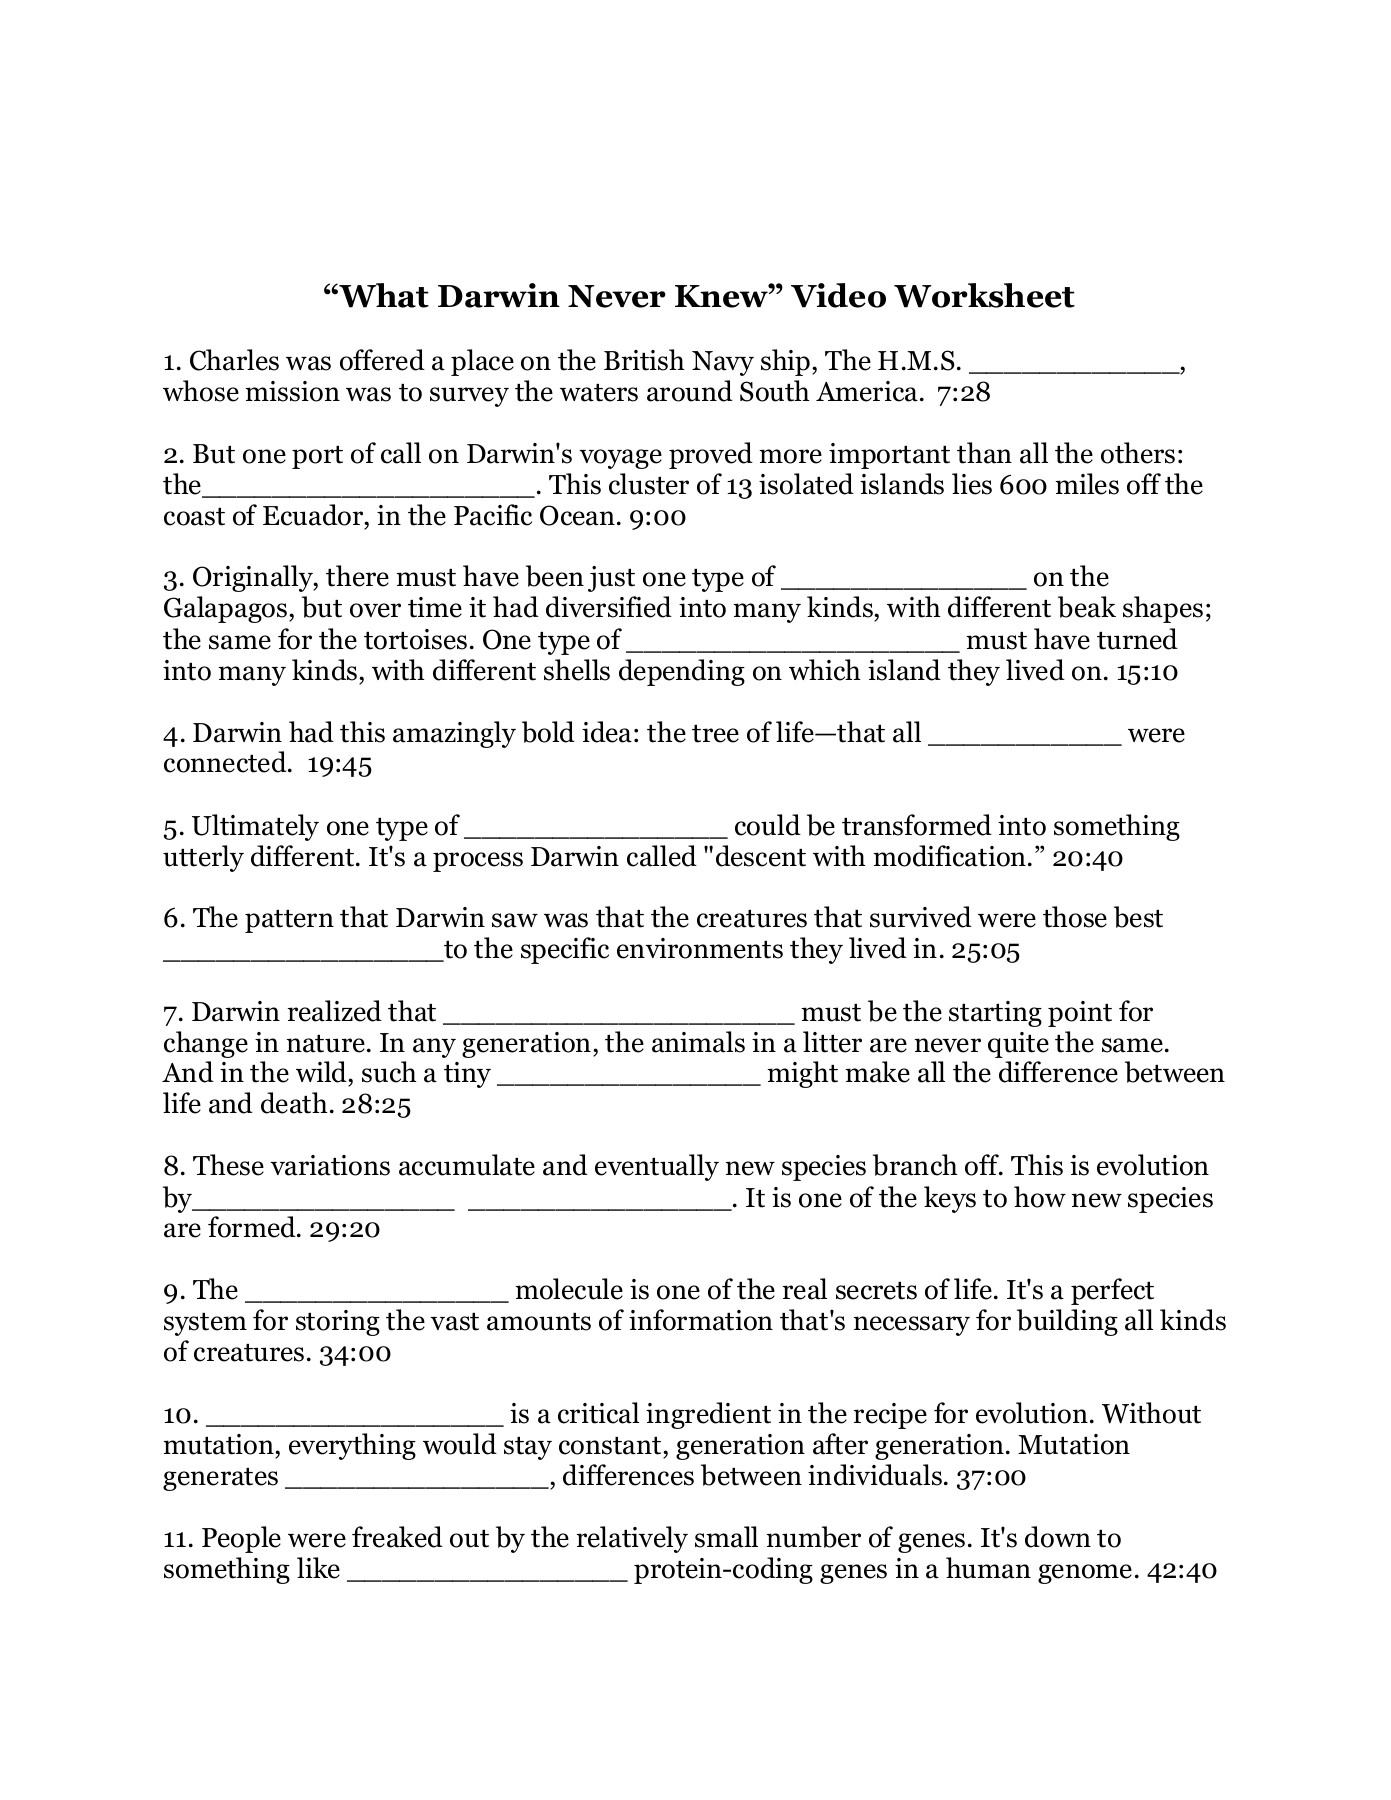 What Darwin Never Knew Worksheet - Welcome to Senior Biology